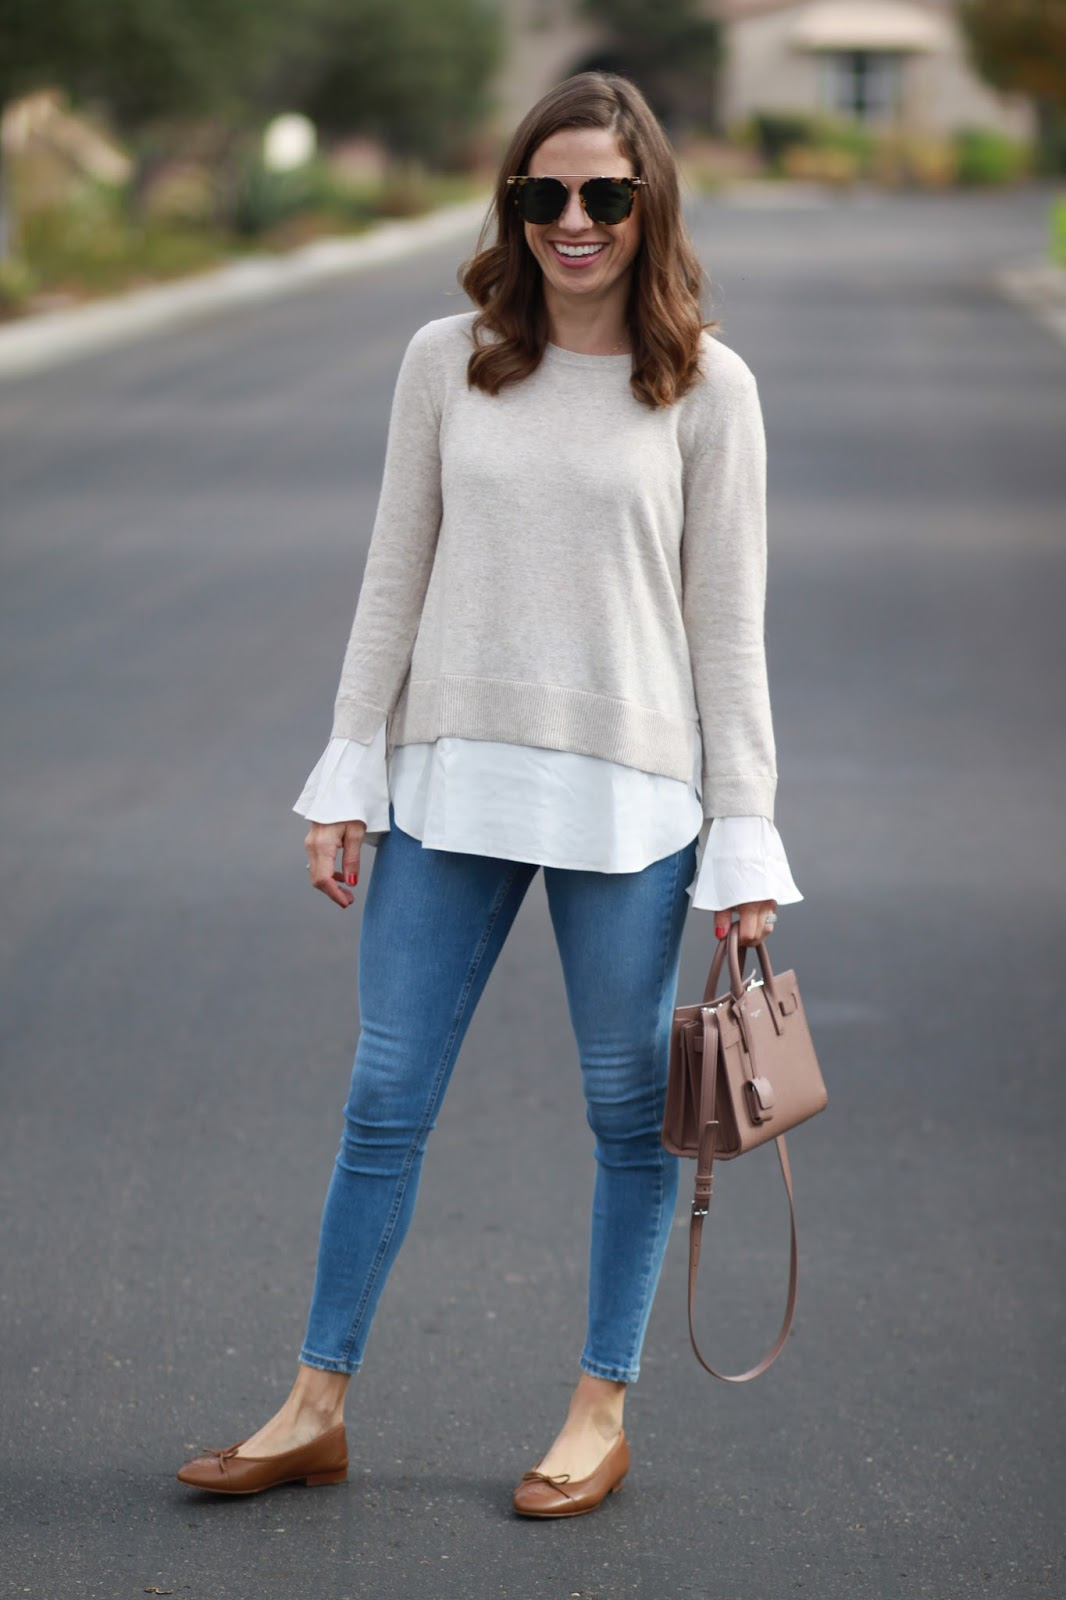 2 in 1 sweater outfit